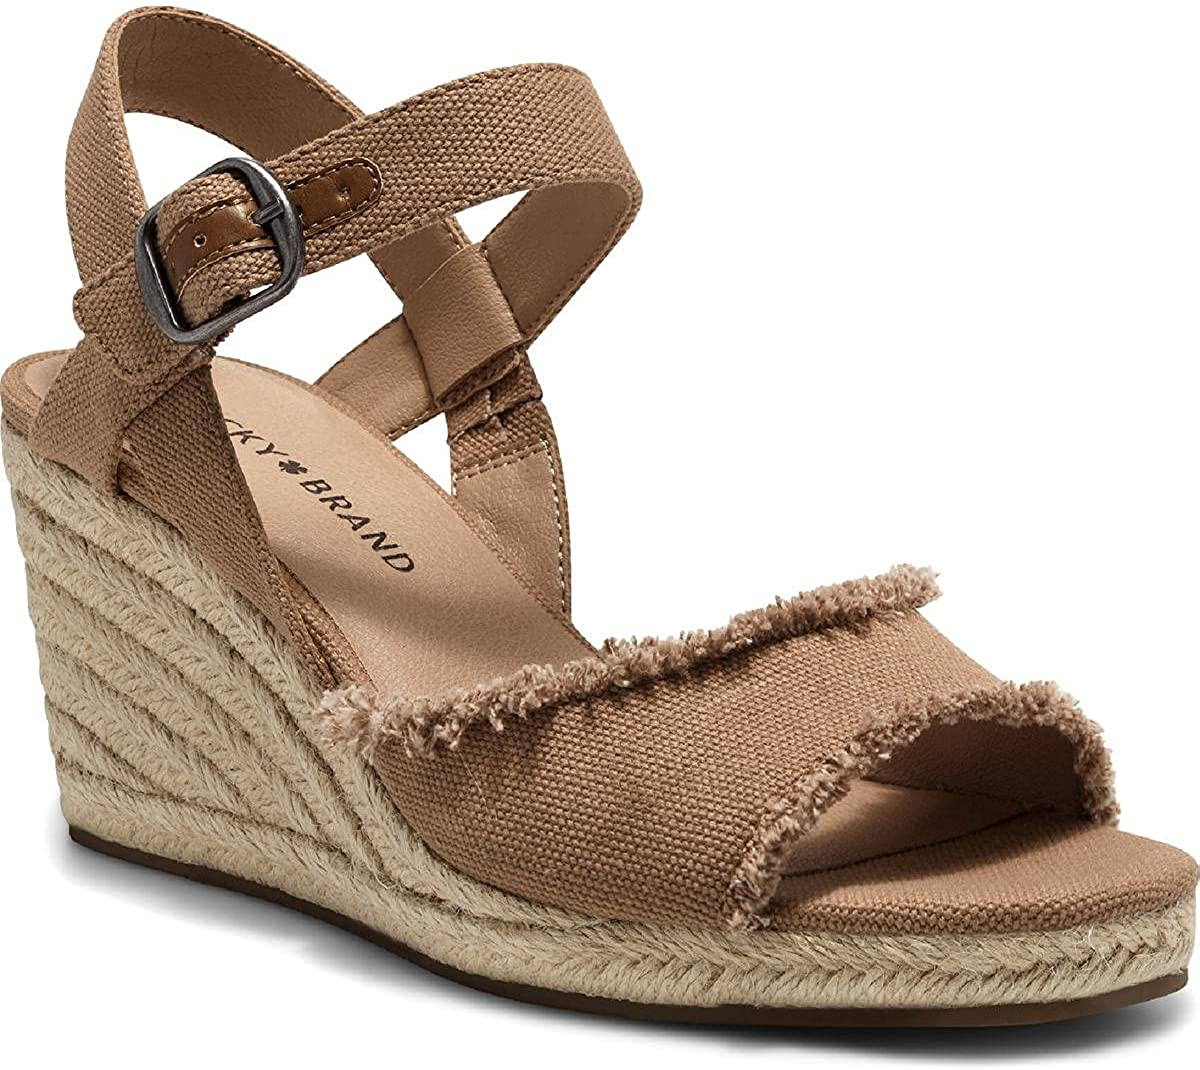 Lucky Luxury Brand OFFicial store Mindra Distressed Canvas Wedge S Platform Espadrille